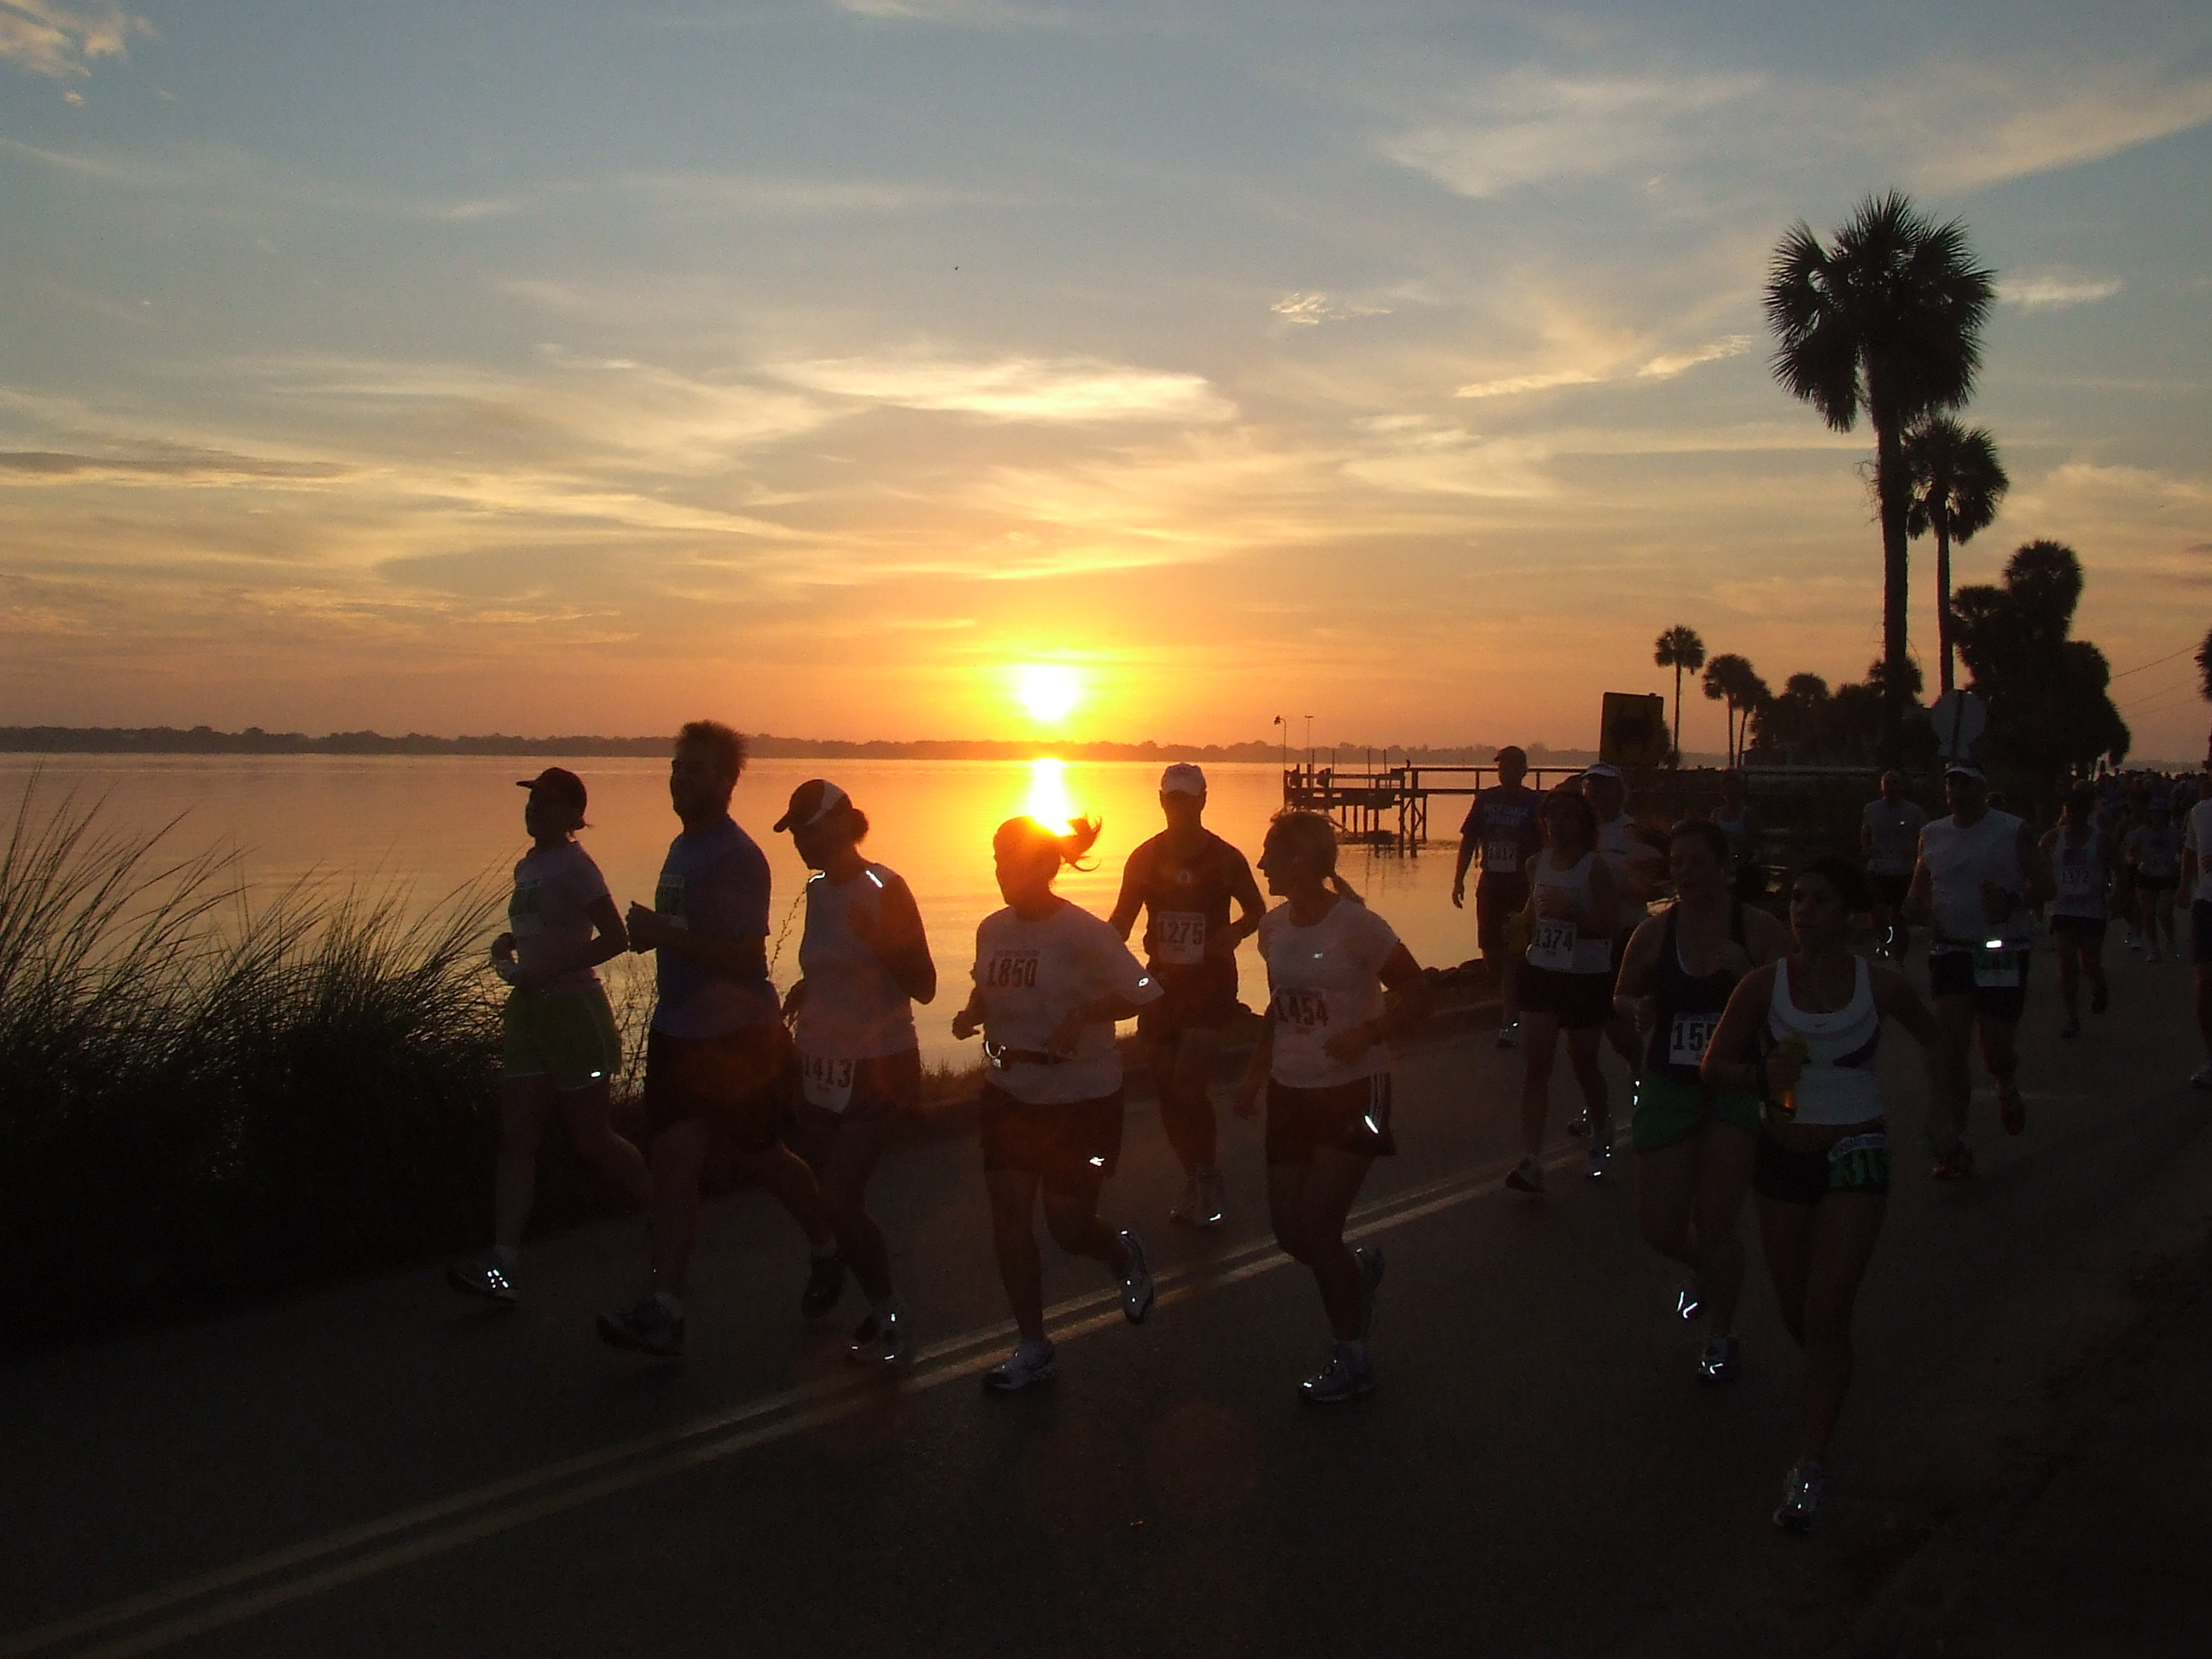 Run along Indian River